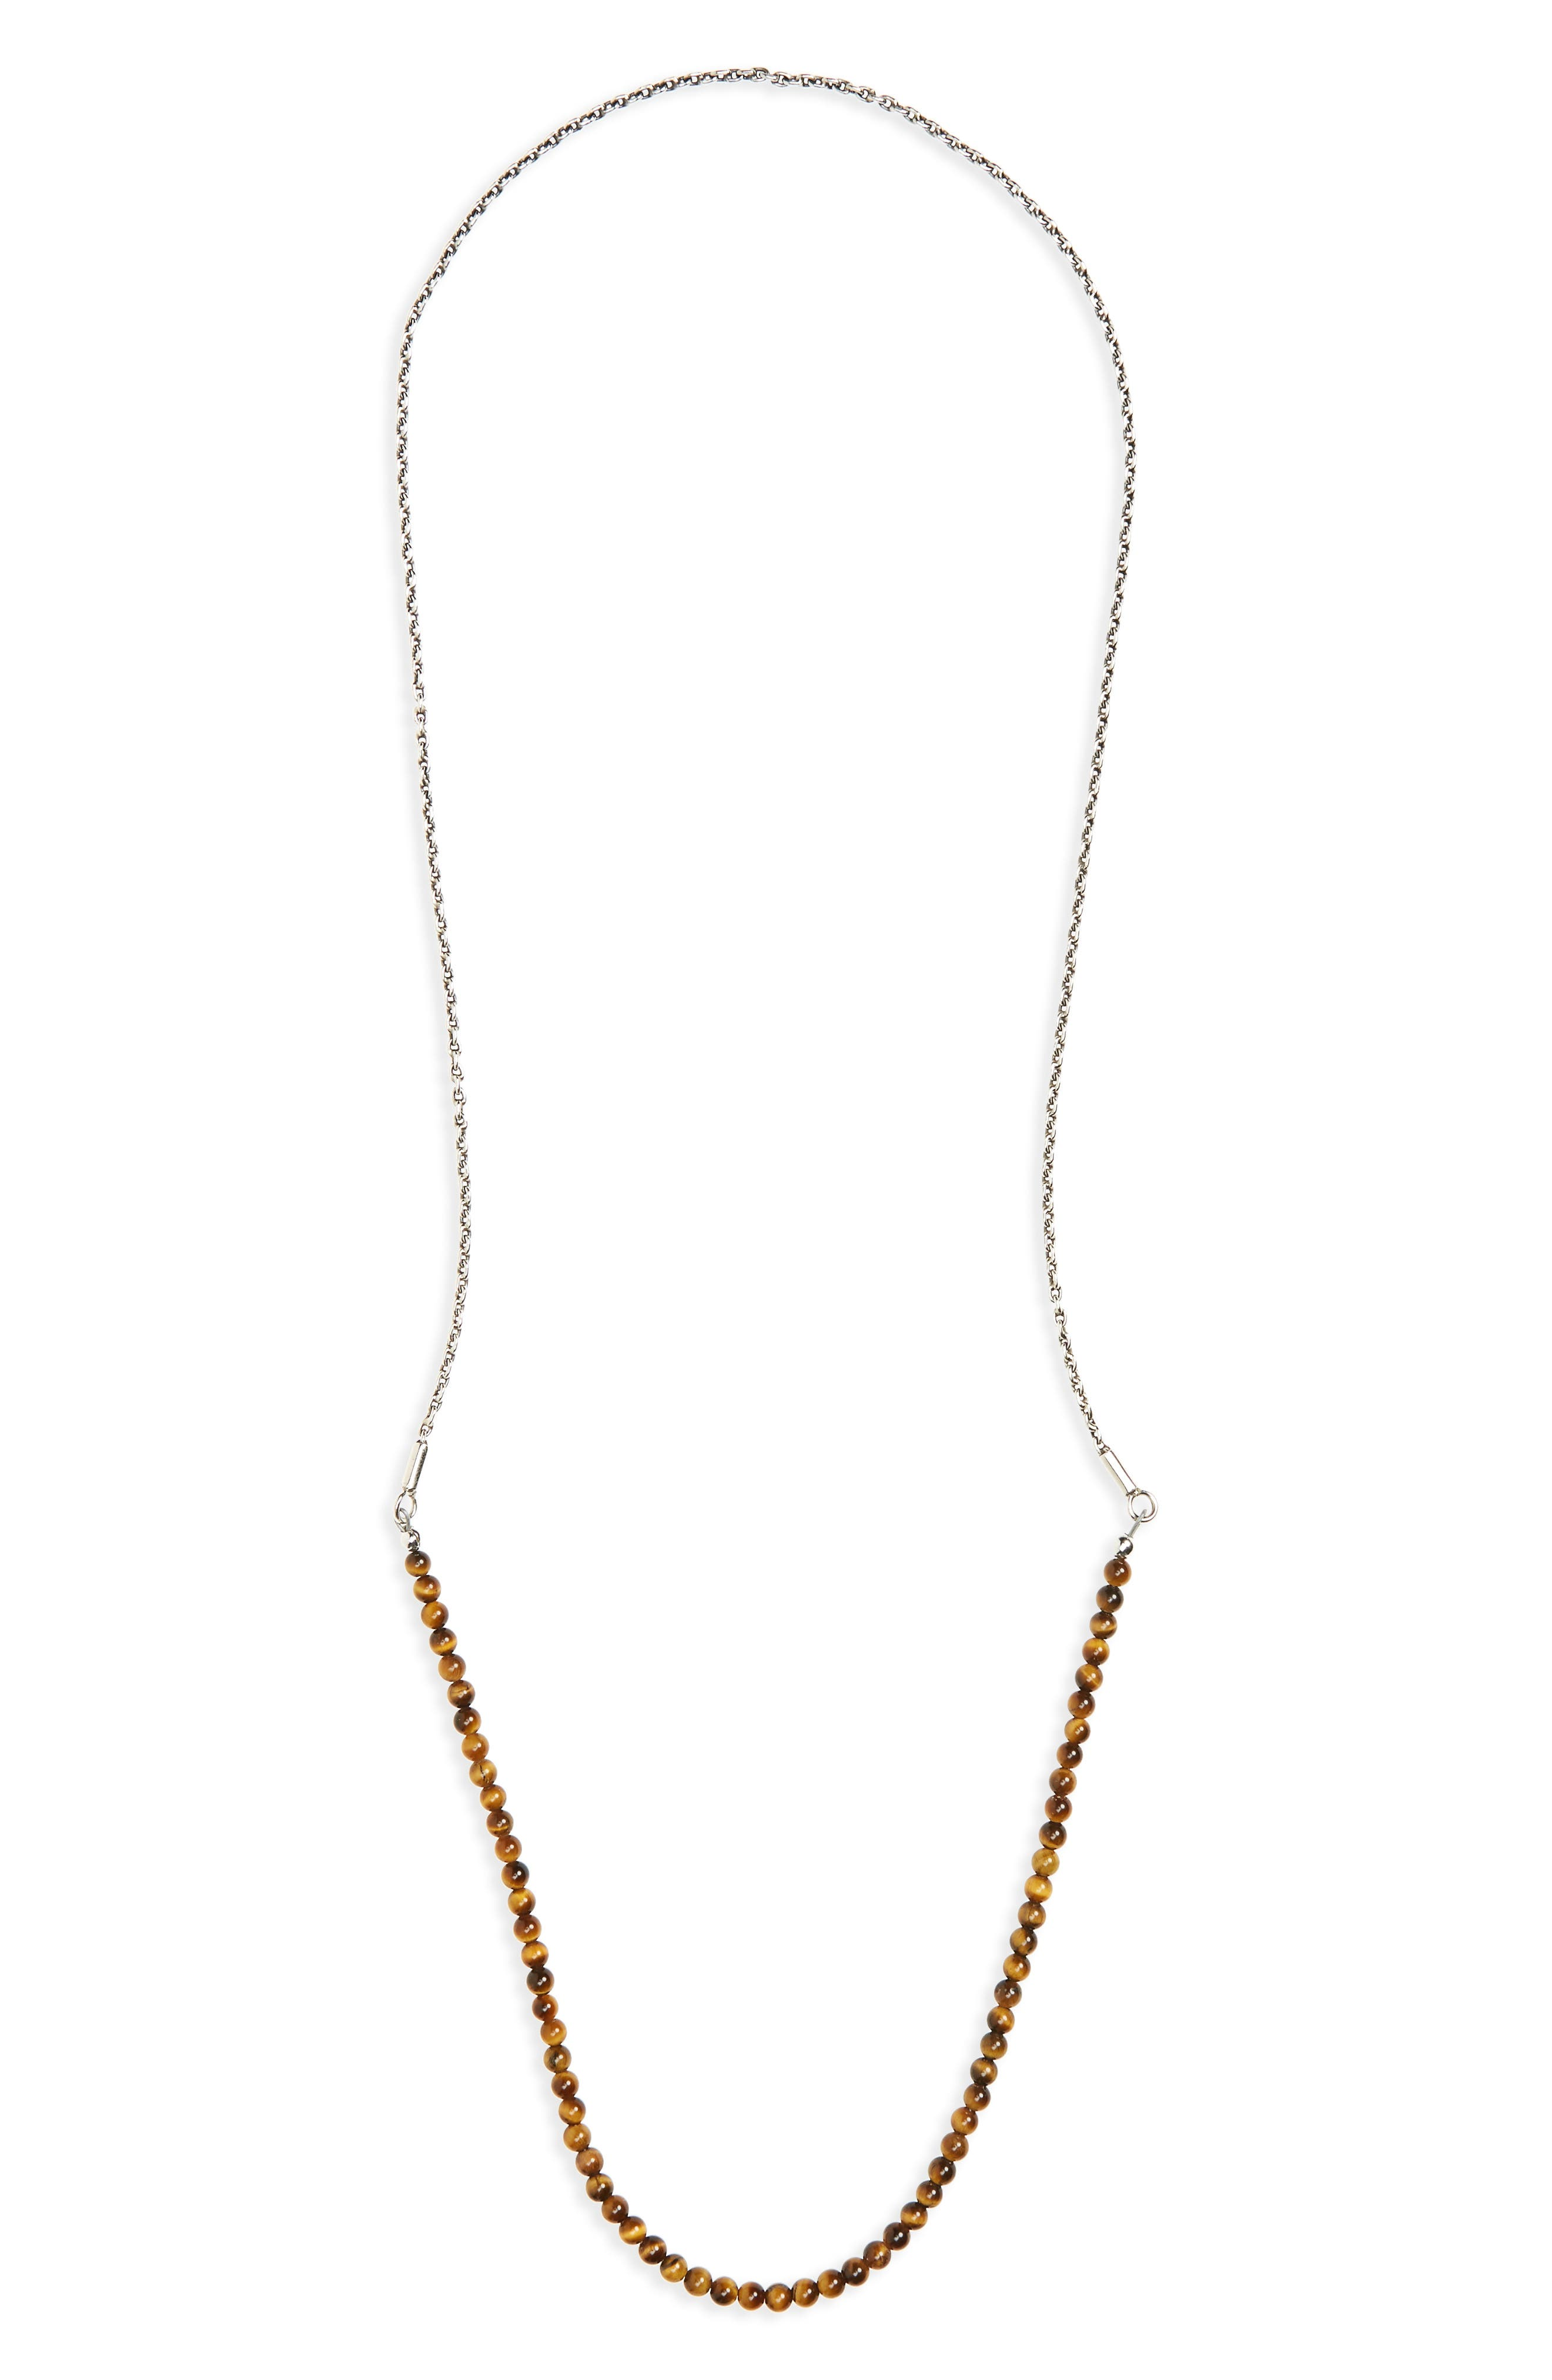 Alternate Image 1 Selected - Caputo & Co. Stone & Sterling Silver Necklace